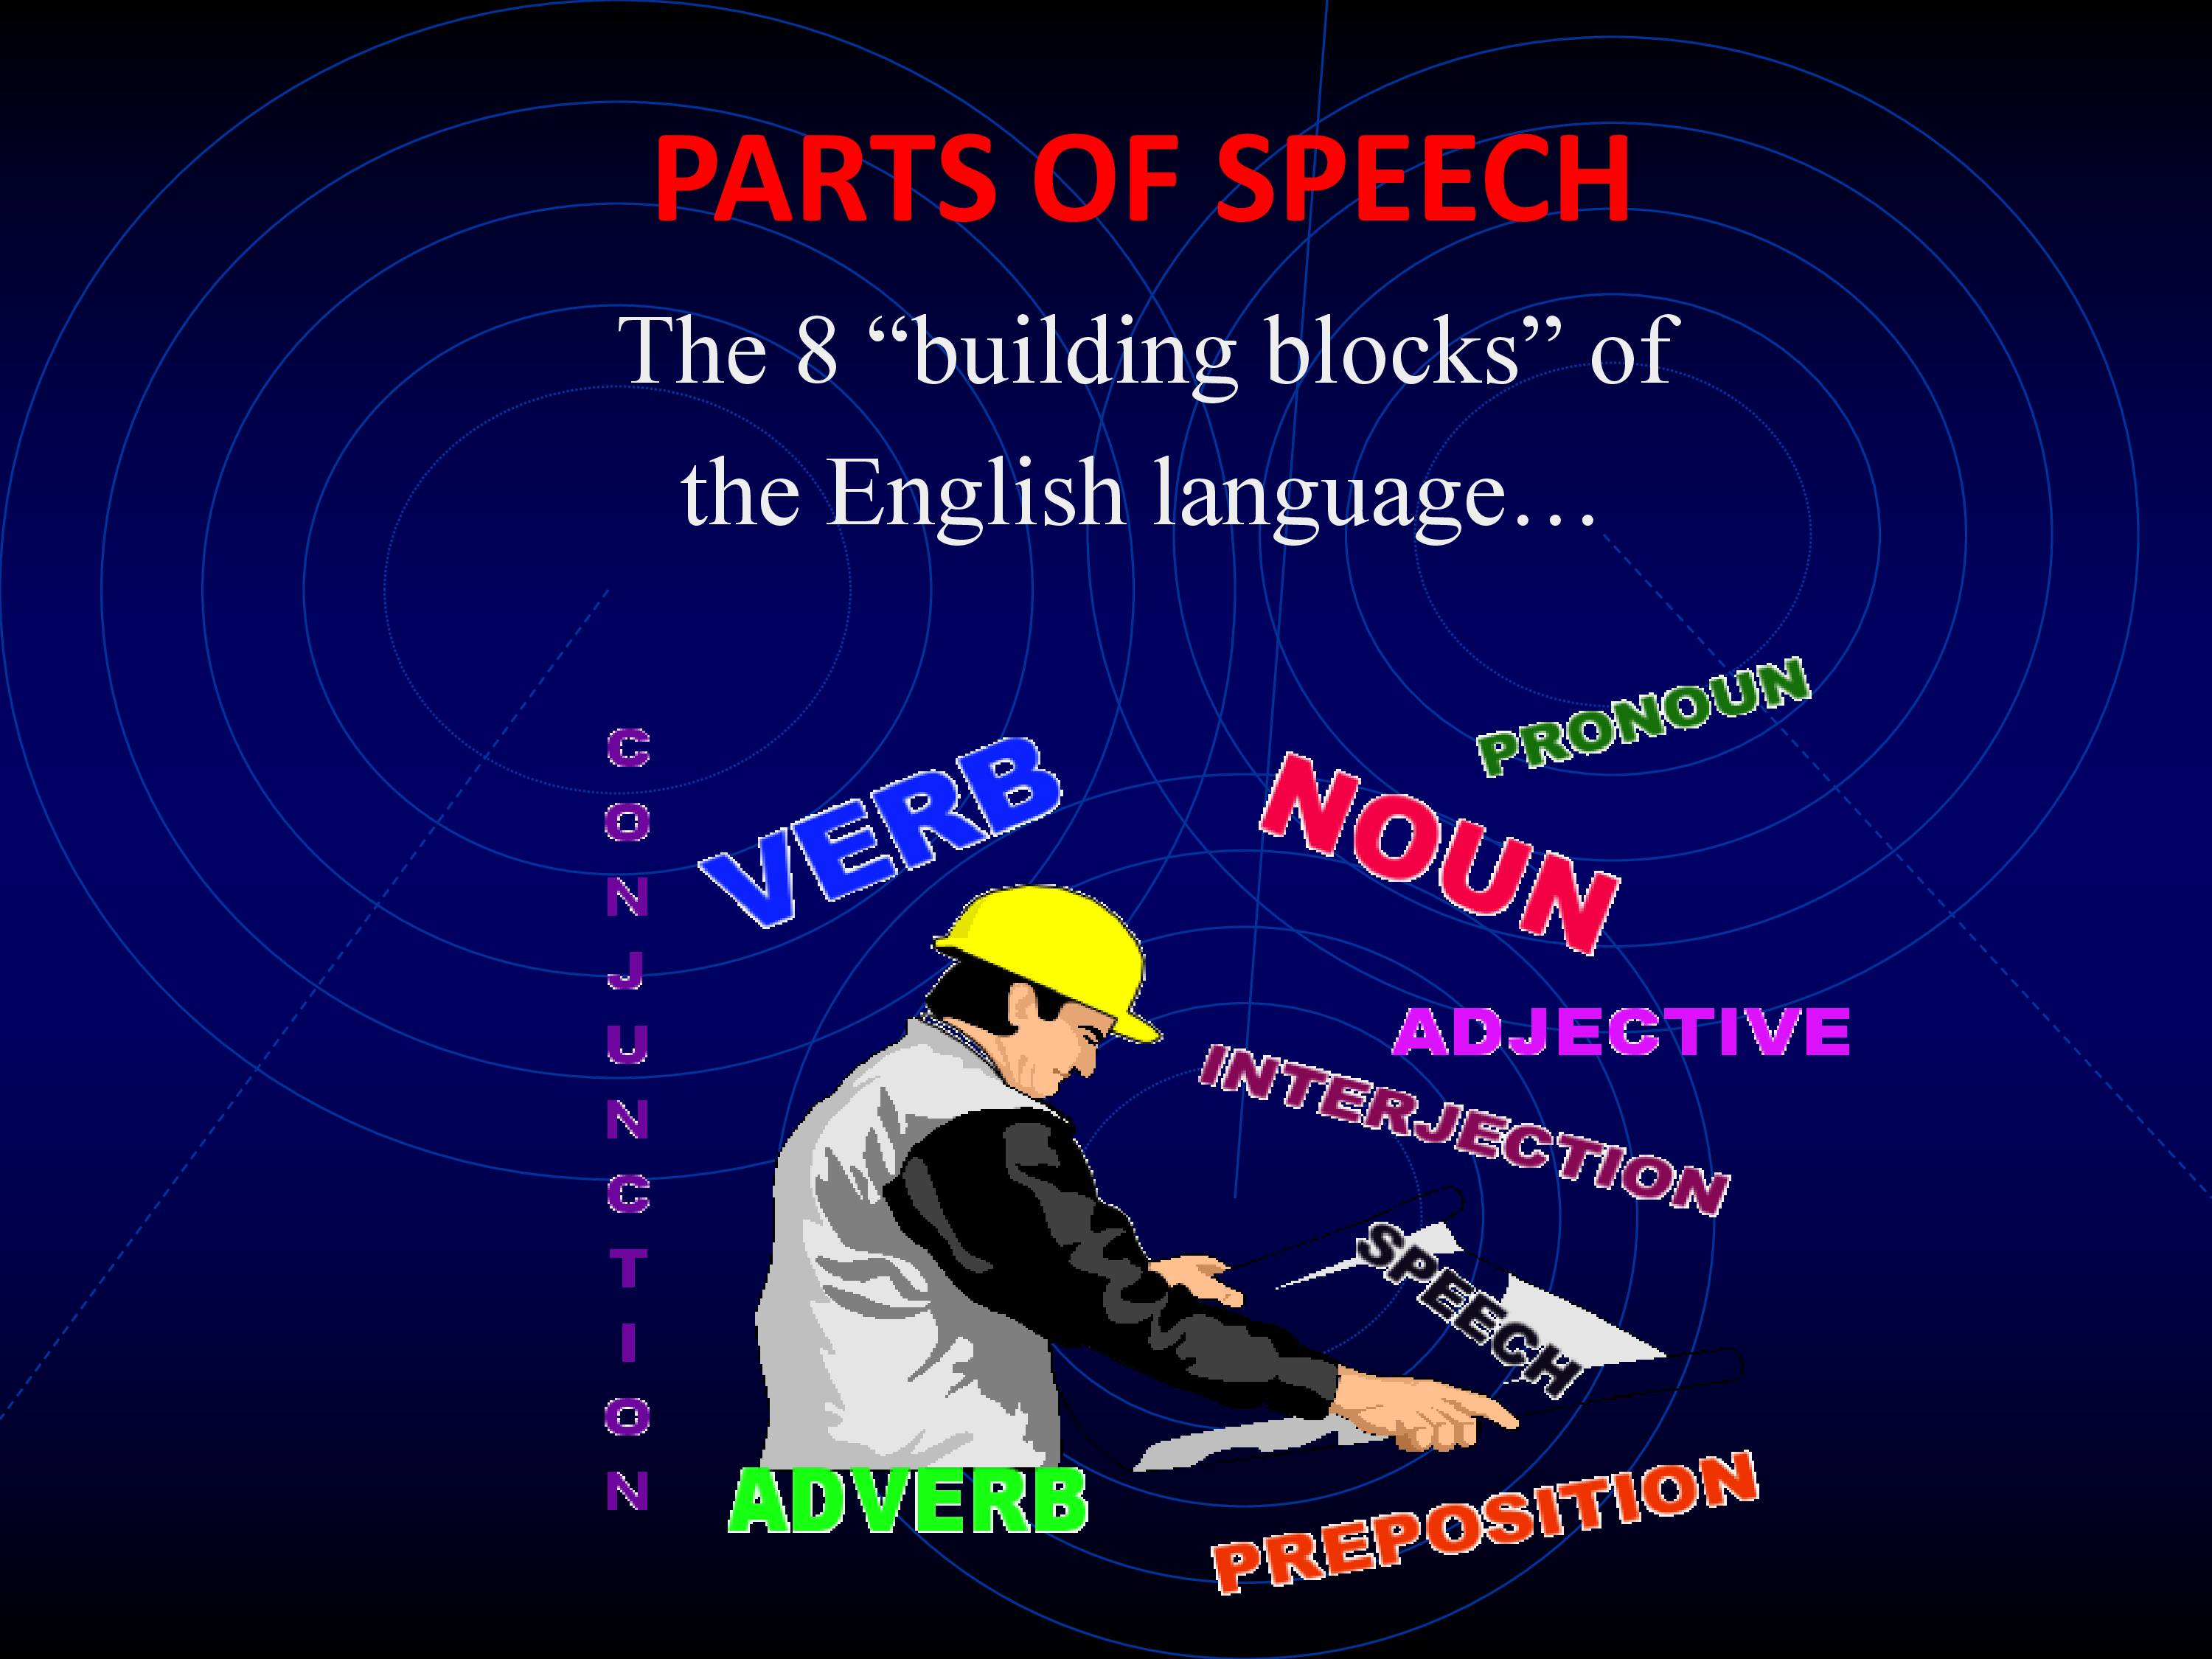 PPT On Parts of Speech